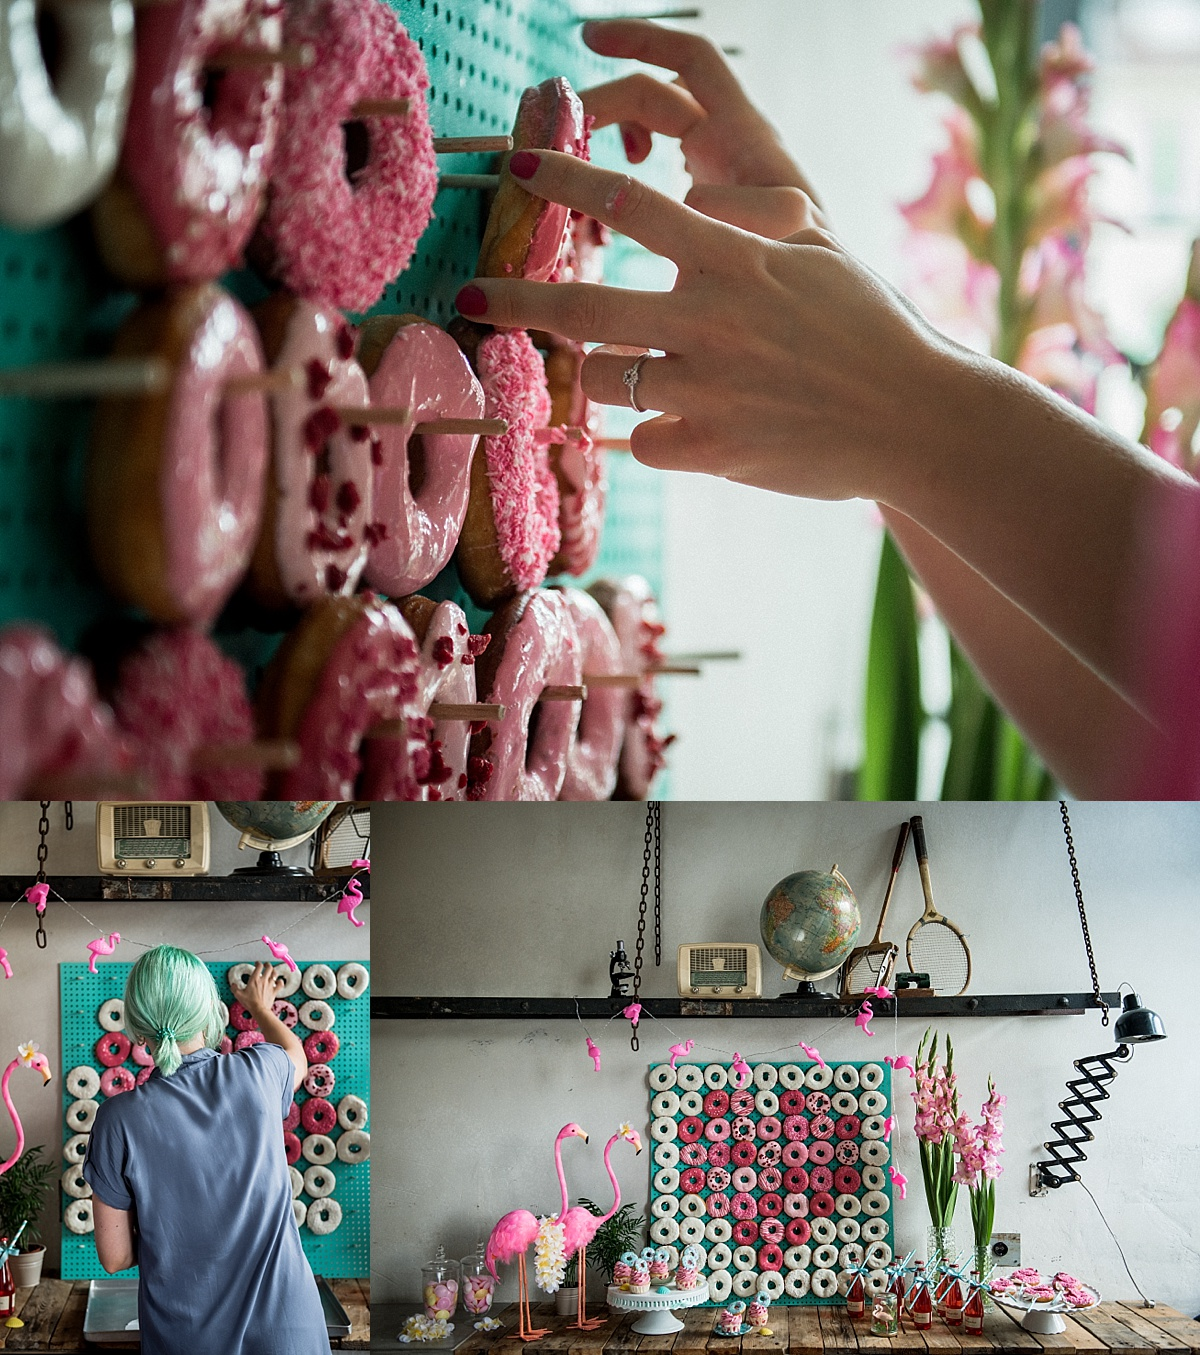 diy donut wall selber machen hochzeitsblog marrymag der hochzeitsblog. Black Bedroom Furniture Sets. Home Design Ideas